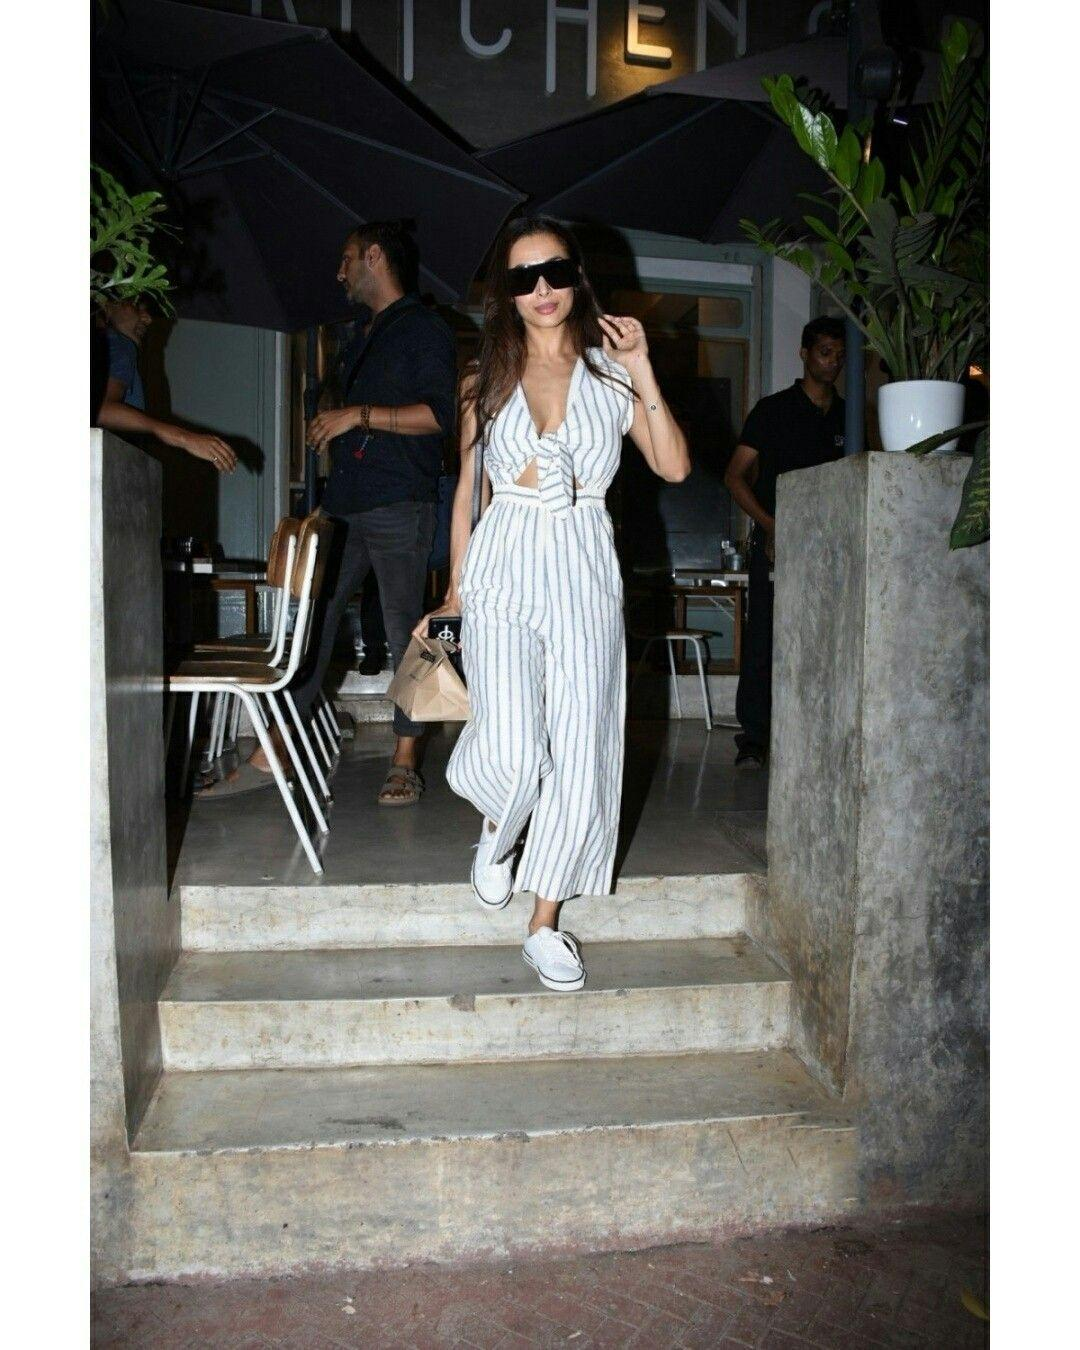 Malaika Arora caught by Paparazzi as she was walking out of Arjun Kapoors home